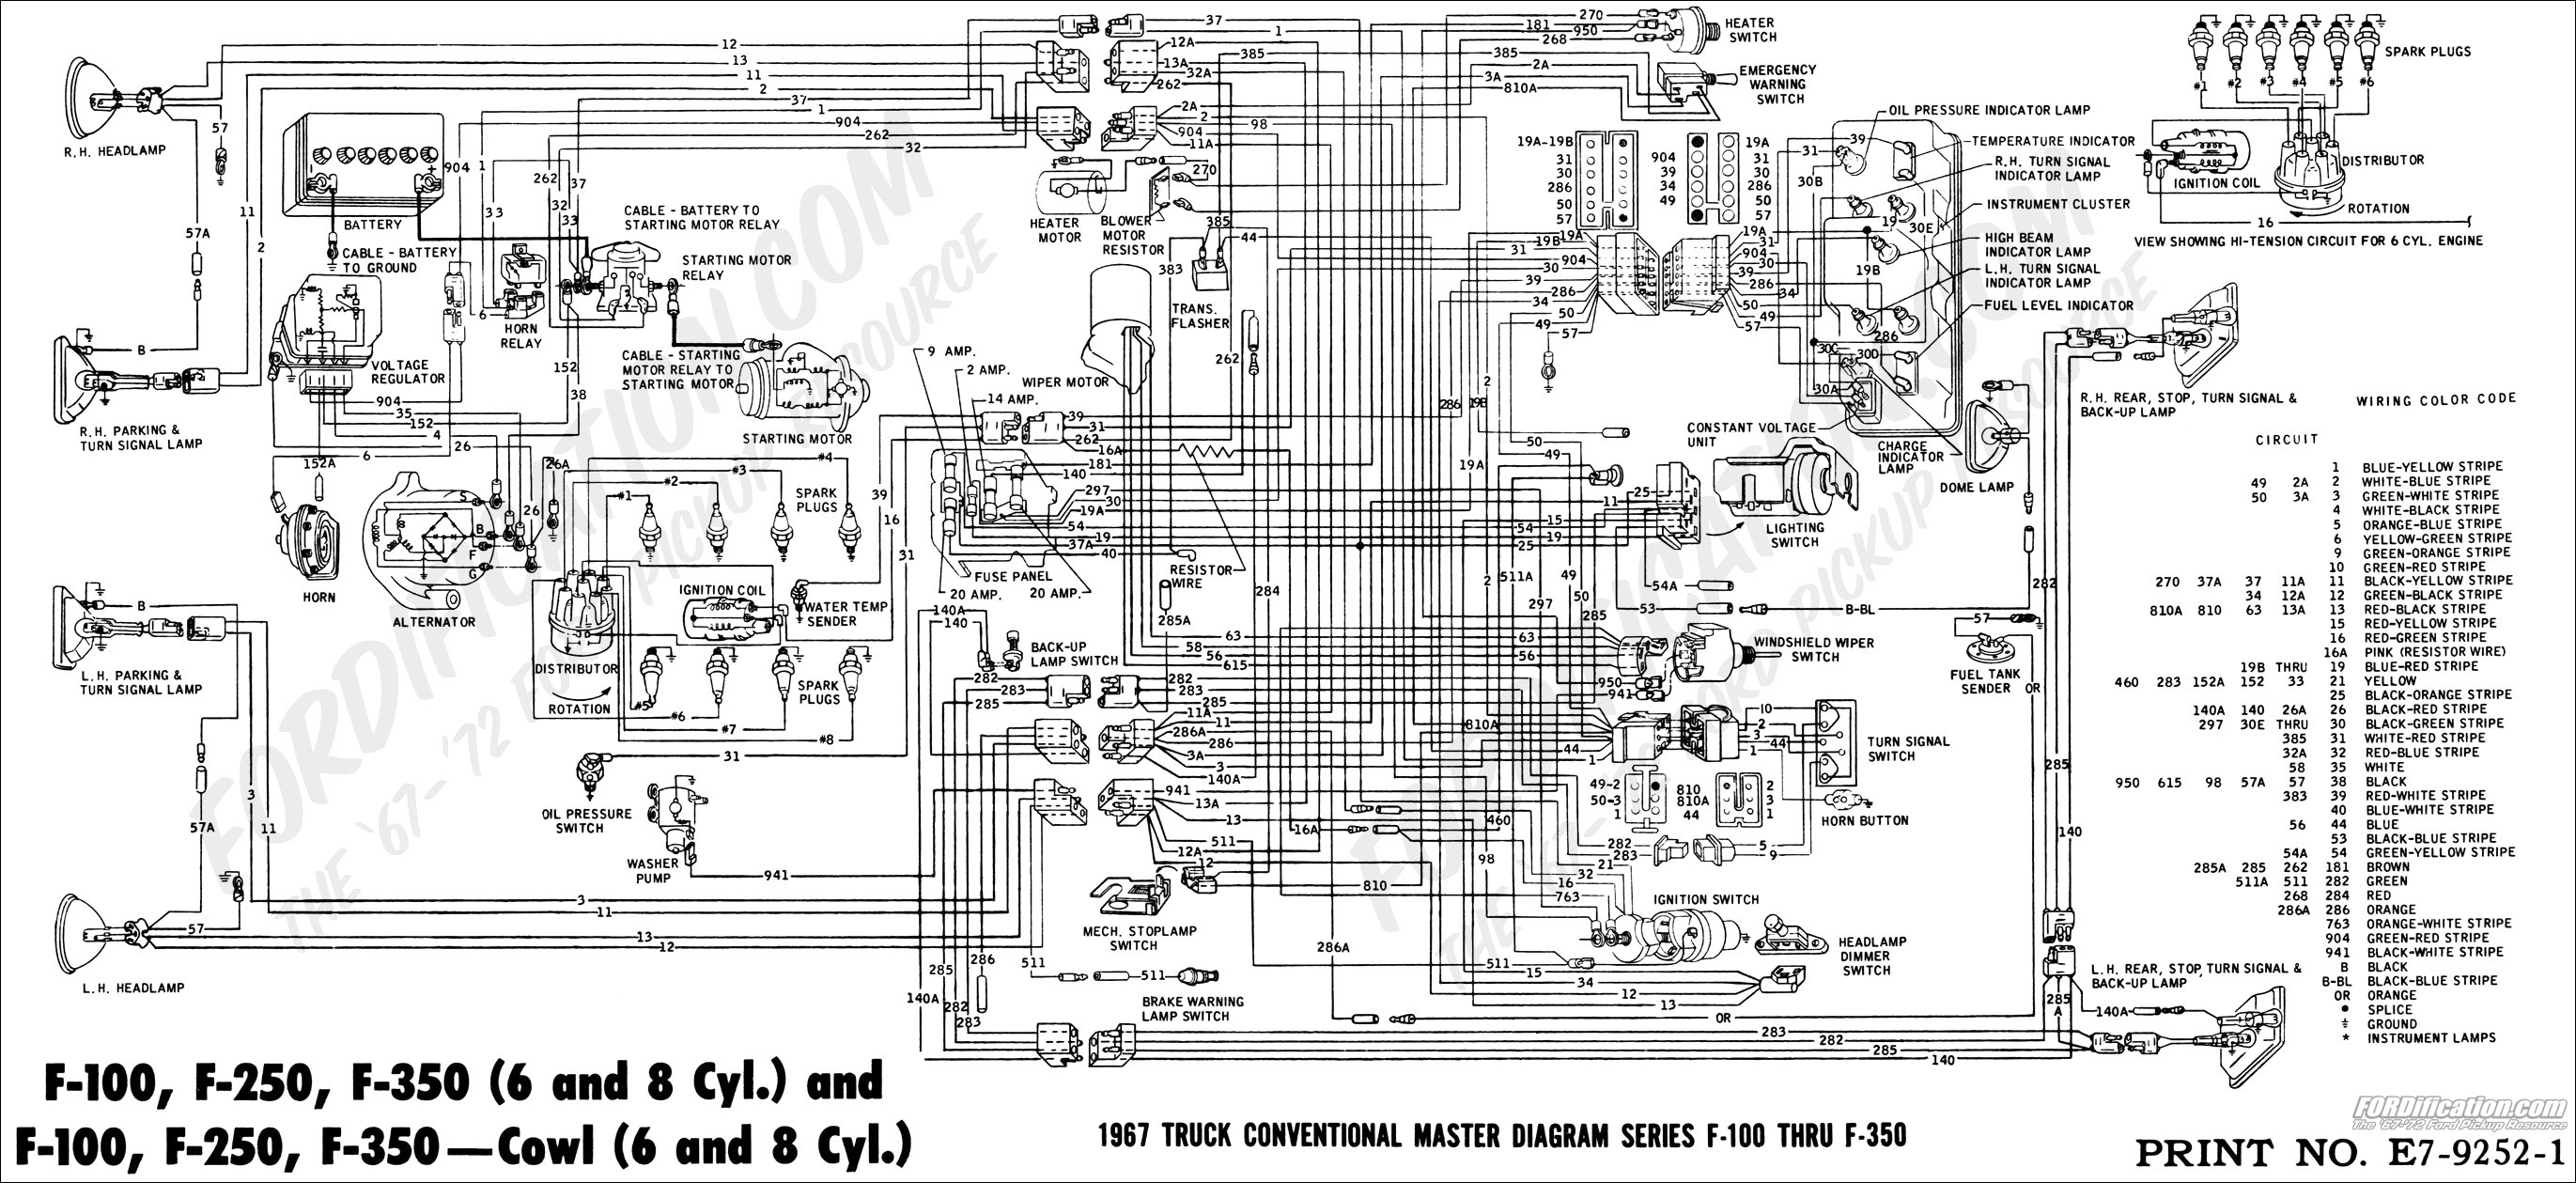 1979 Ford Ignition Switch Wiring Diagram